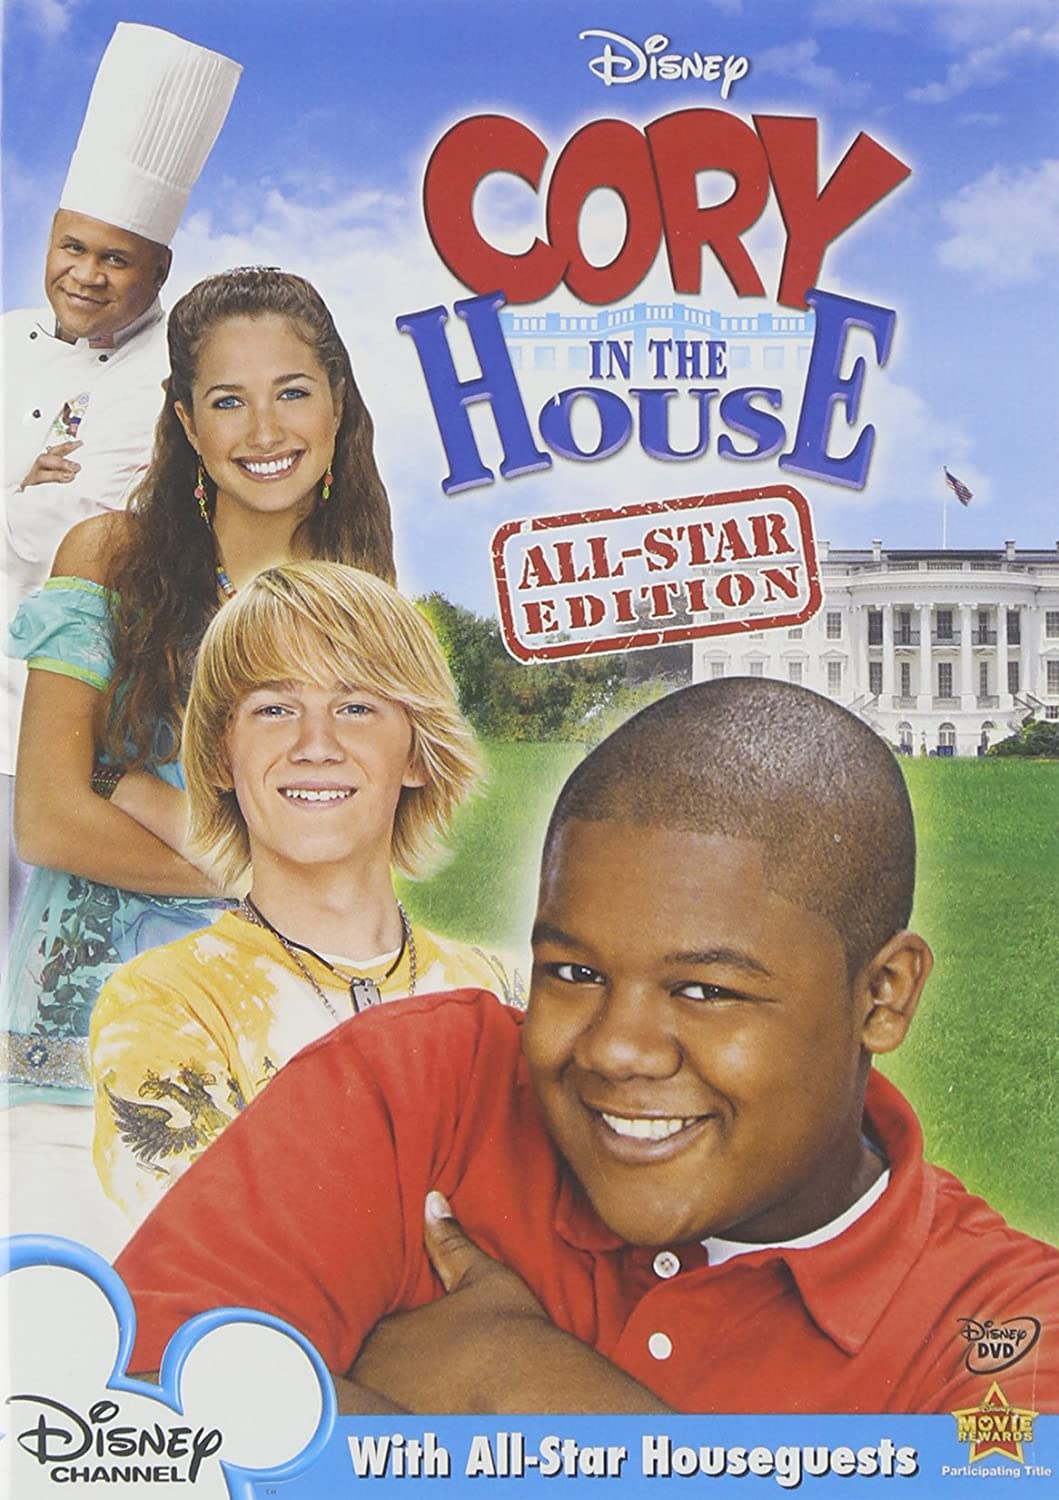 Amazon.com: Cory in the House (All Star Edition): Kyle Massey ...